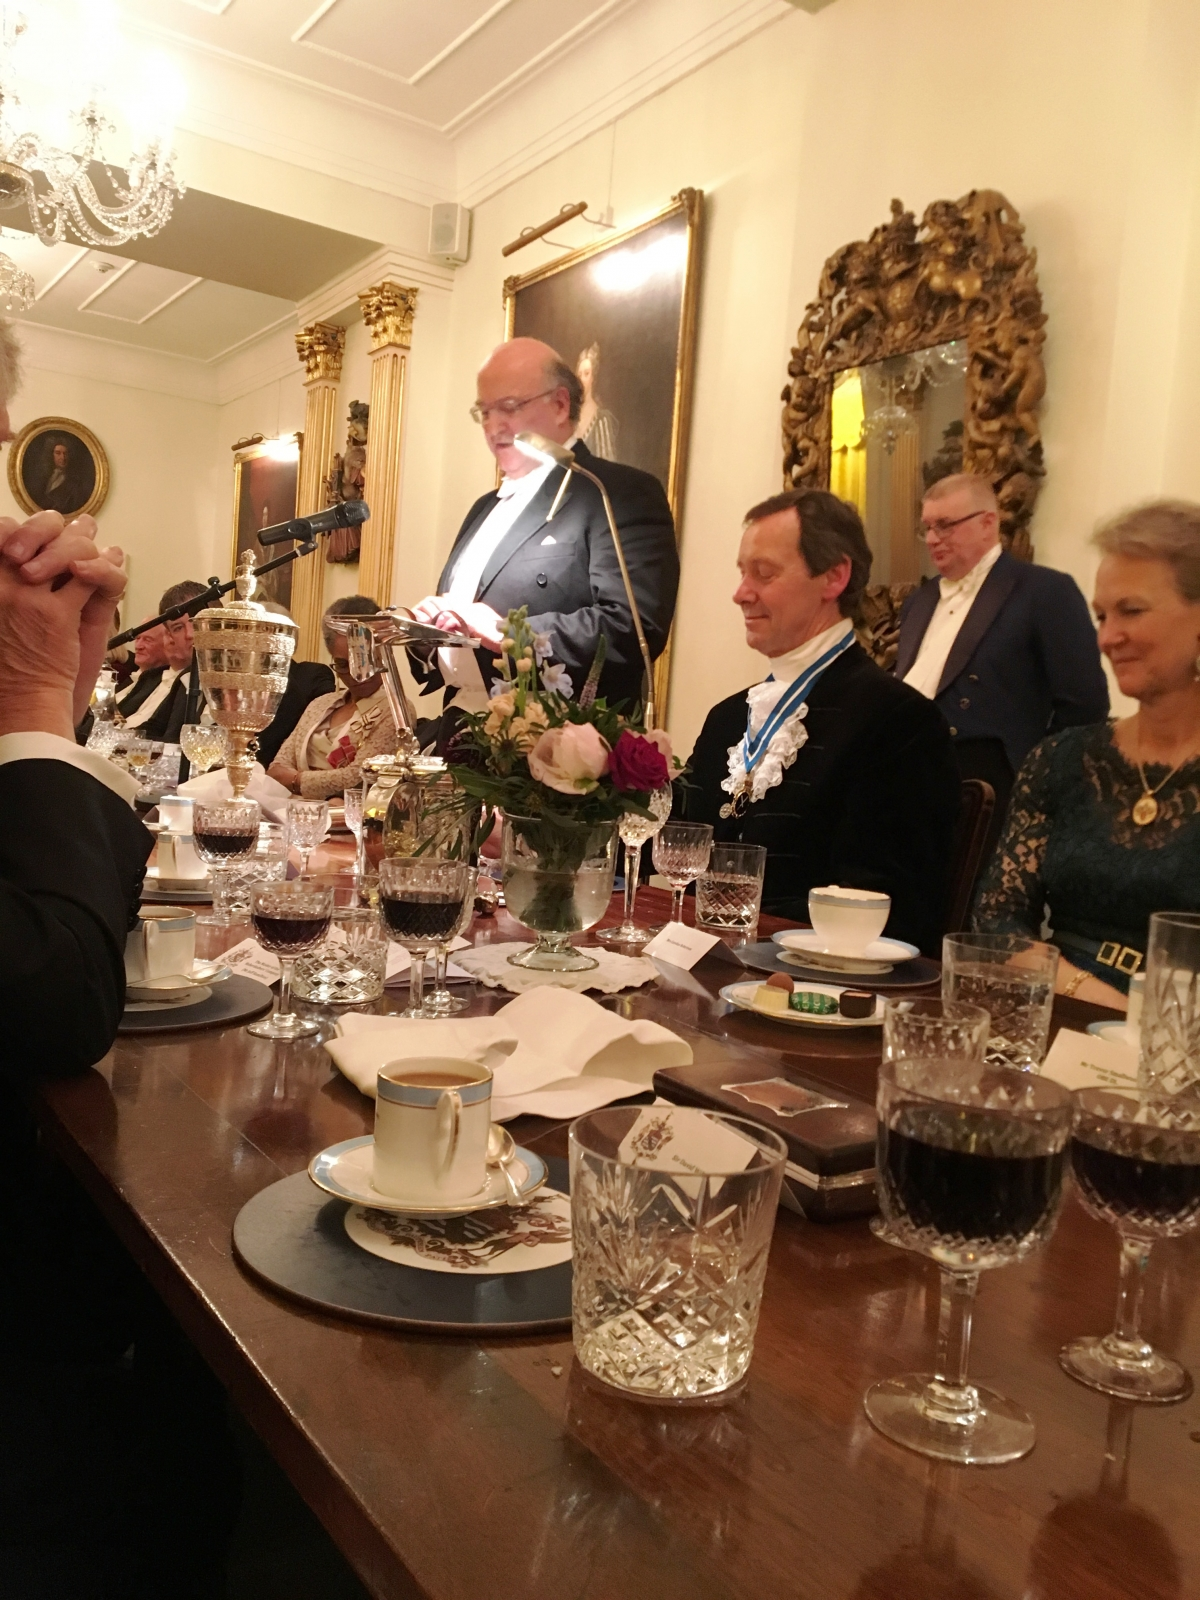 The Society of Merchant Venturers Spring Banquet, Merchants' Hall, Bristol